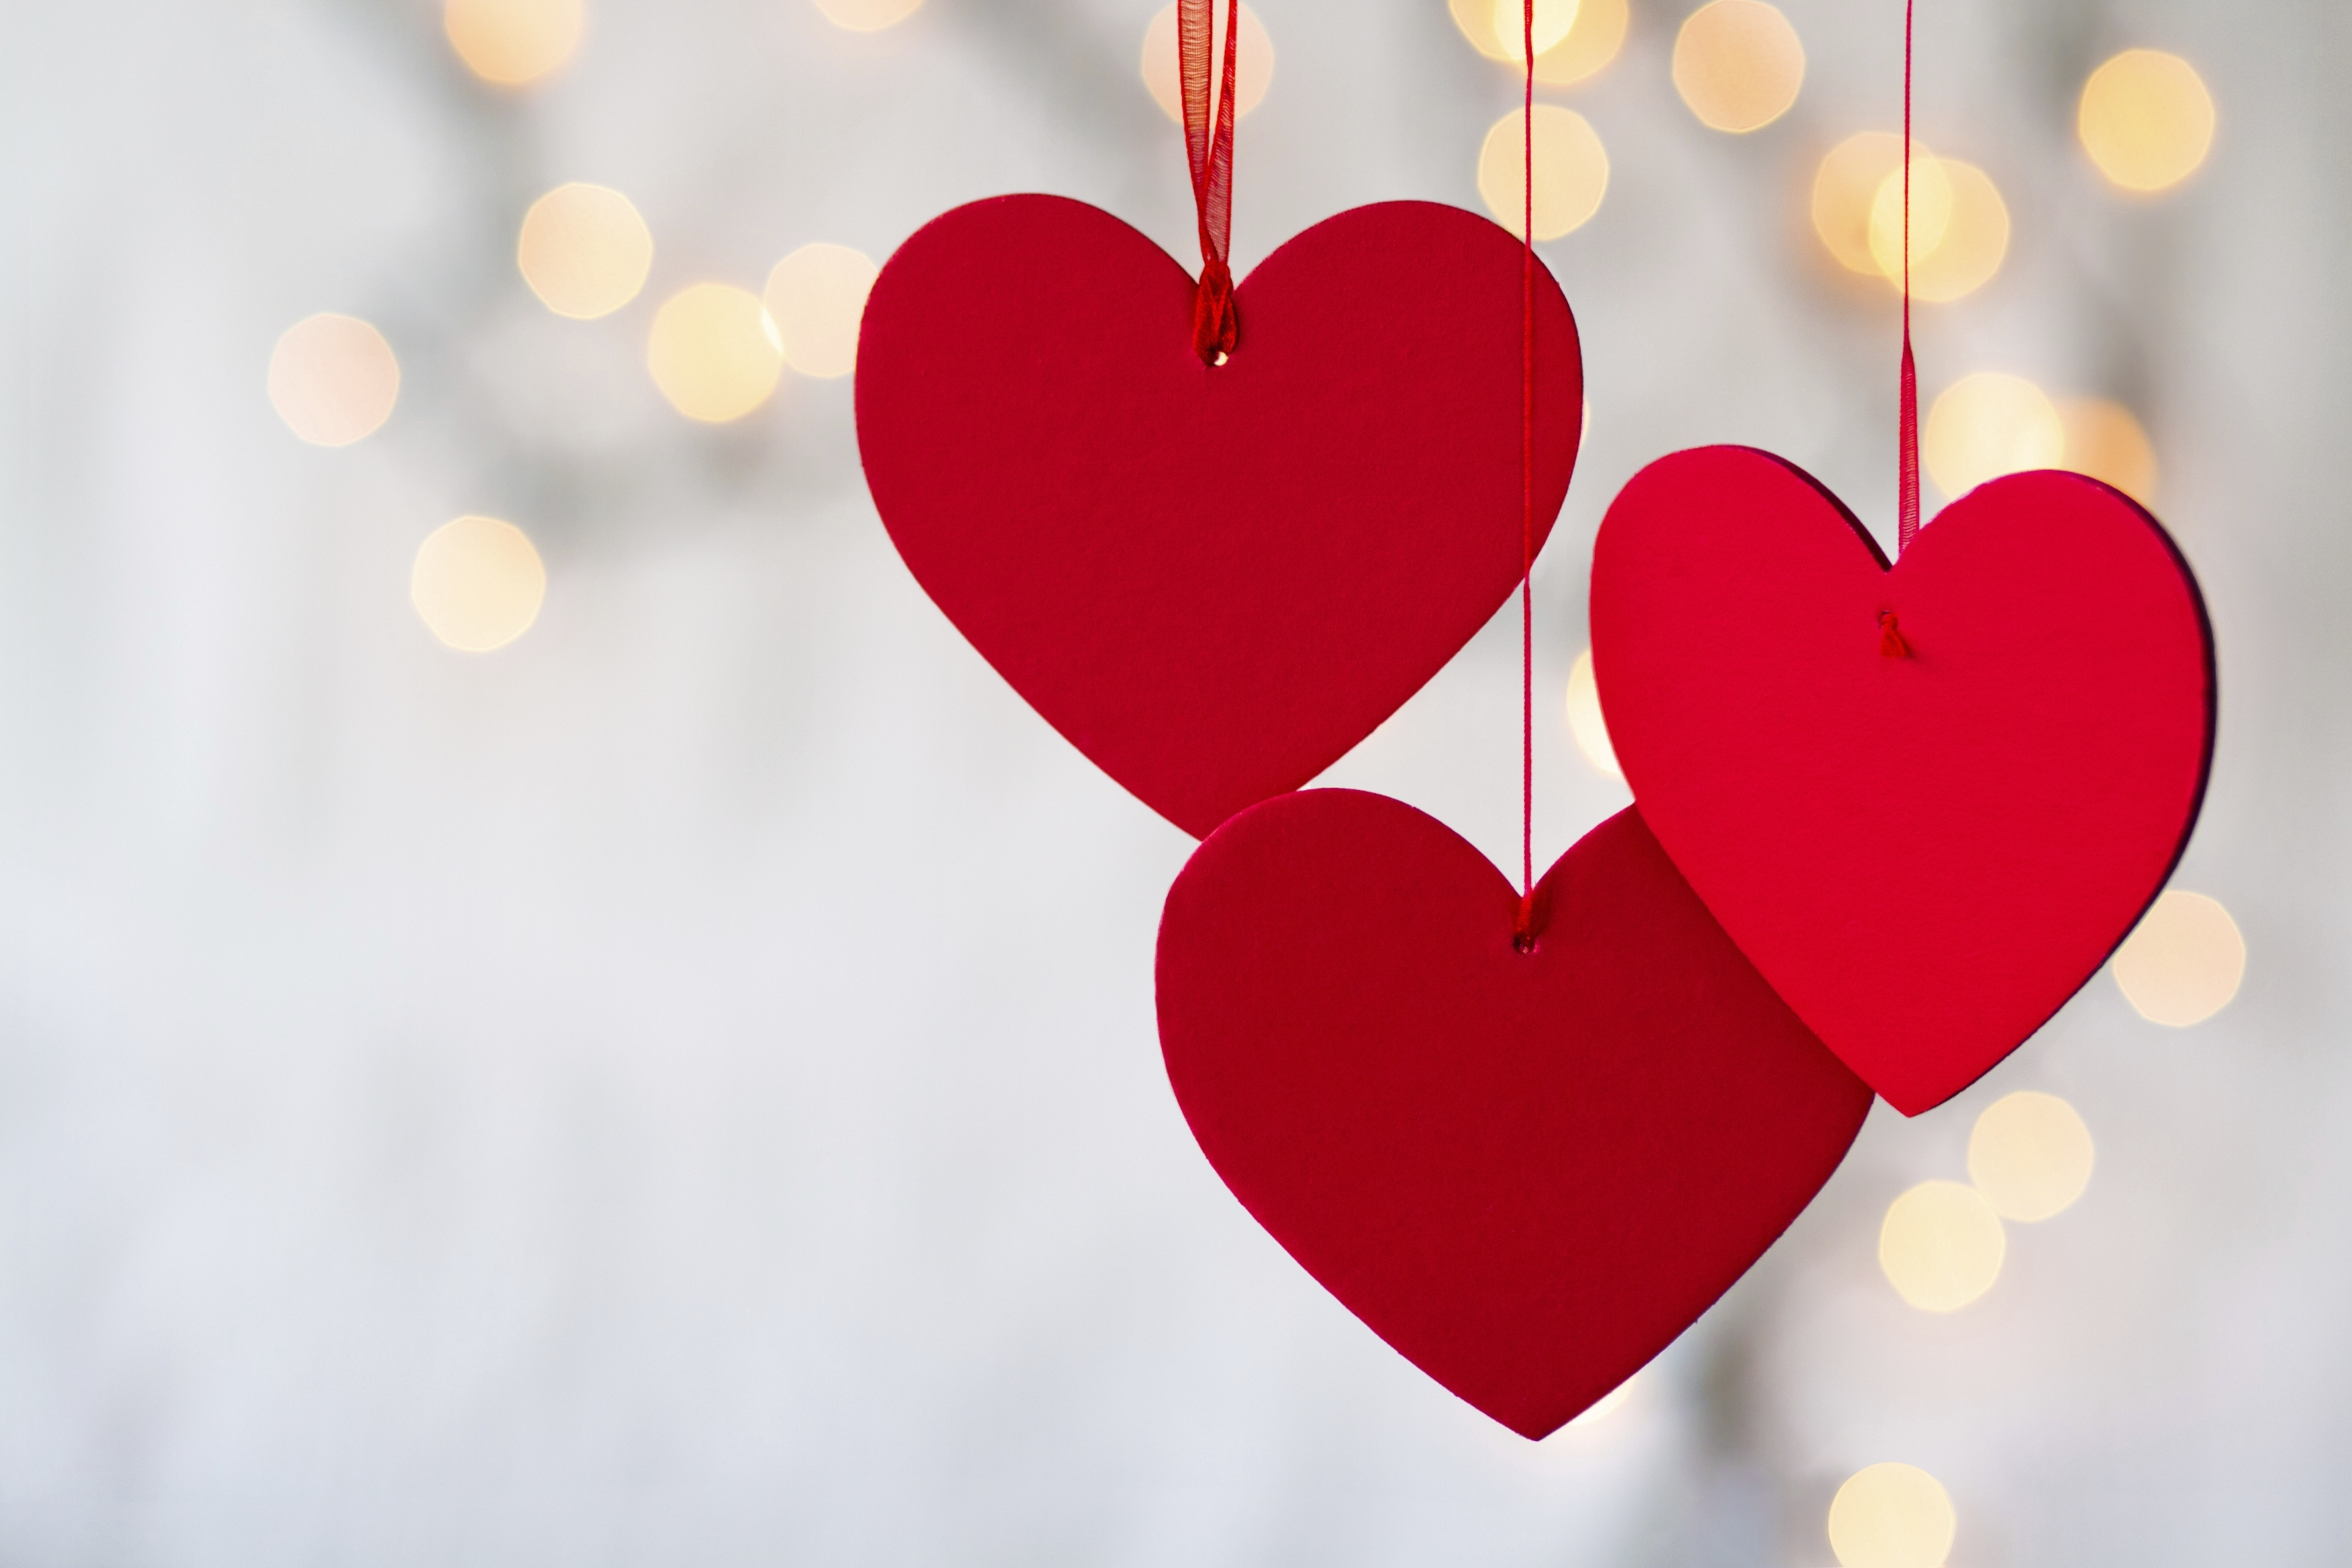 25 Beautiful Valentine's Day HD Wallpapers 2018 For Desktop